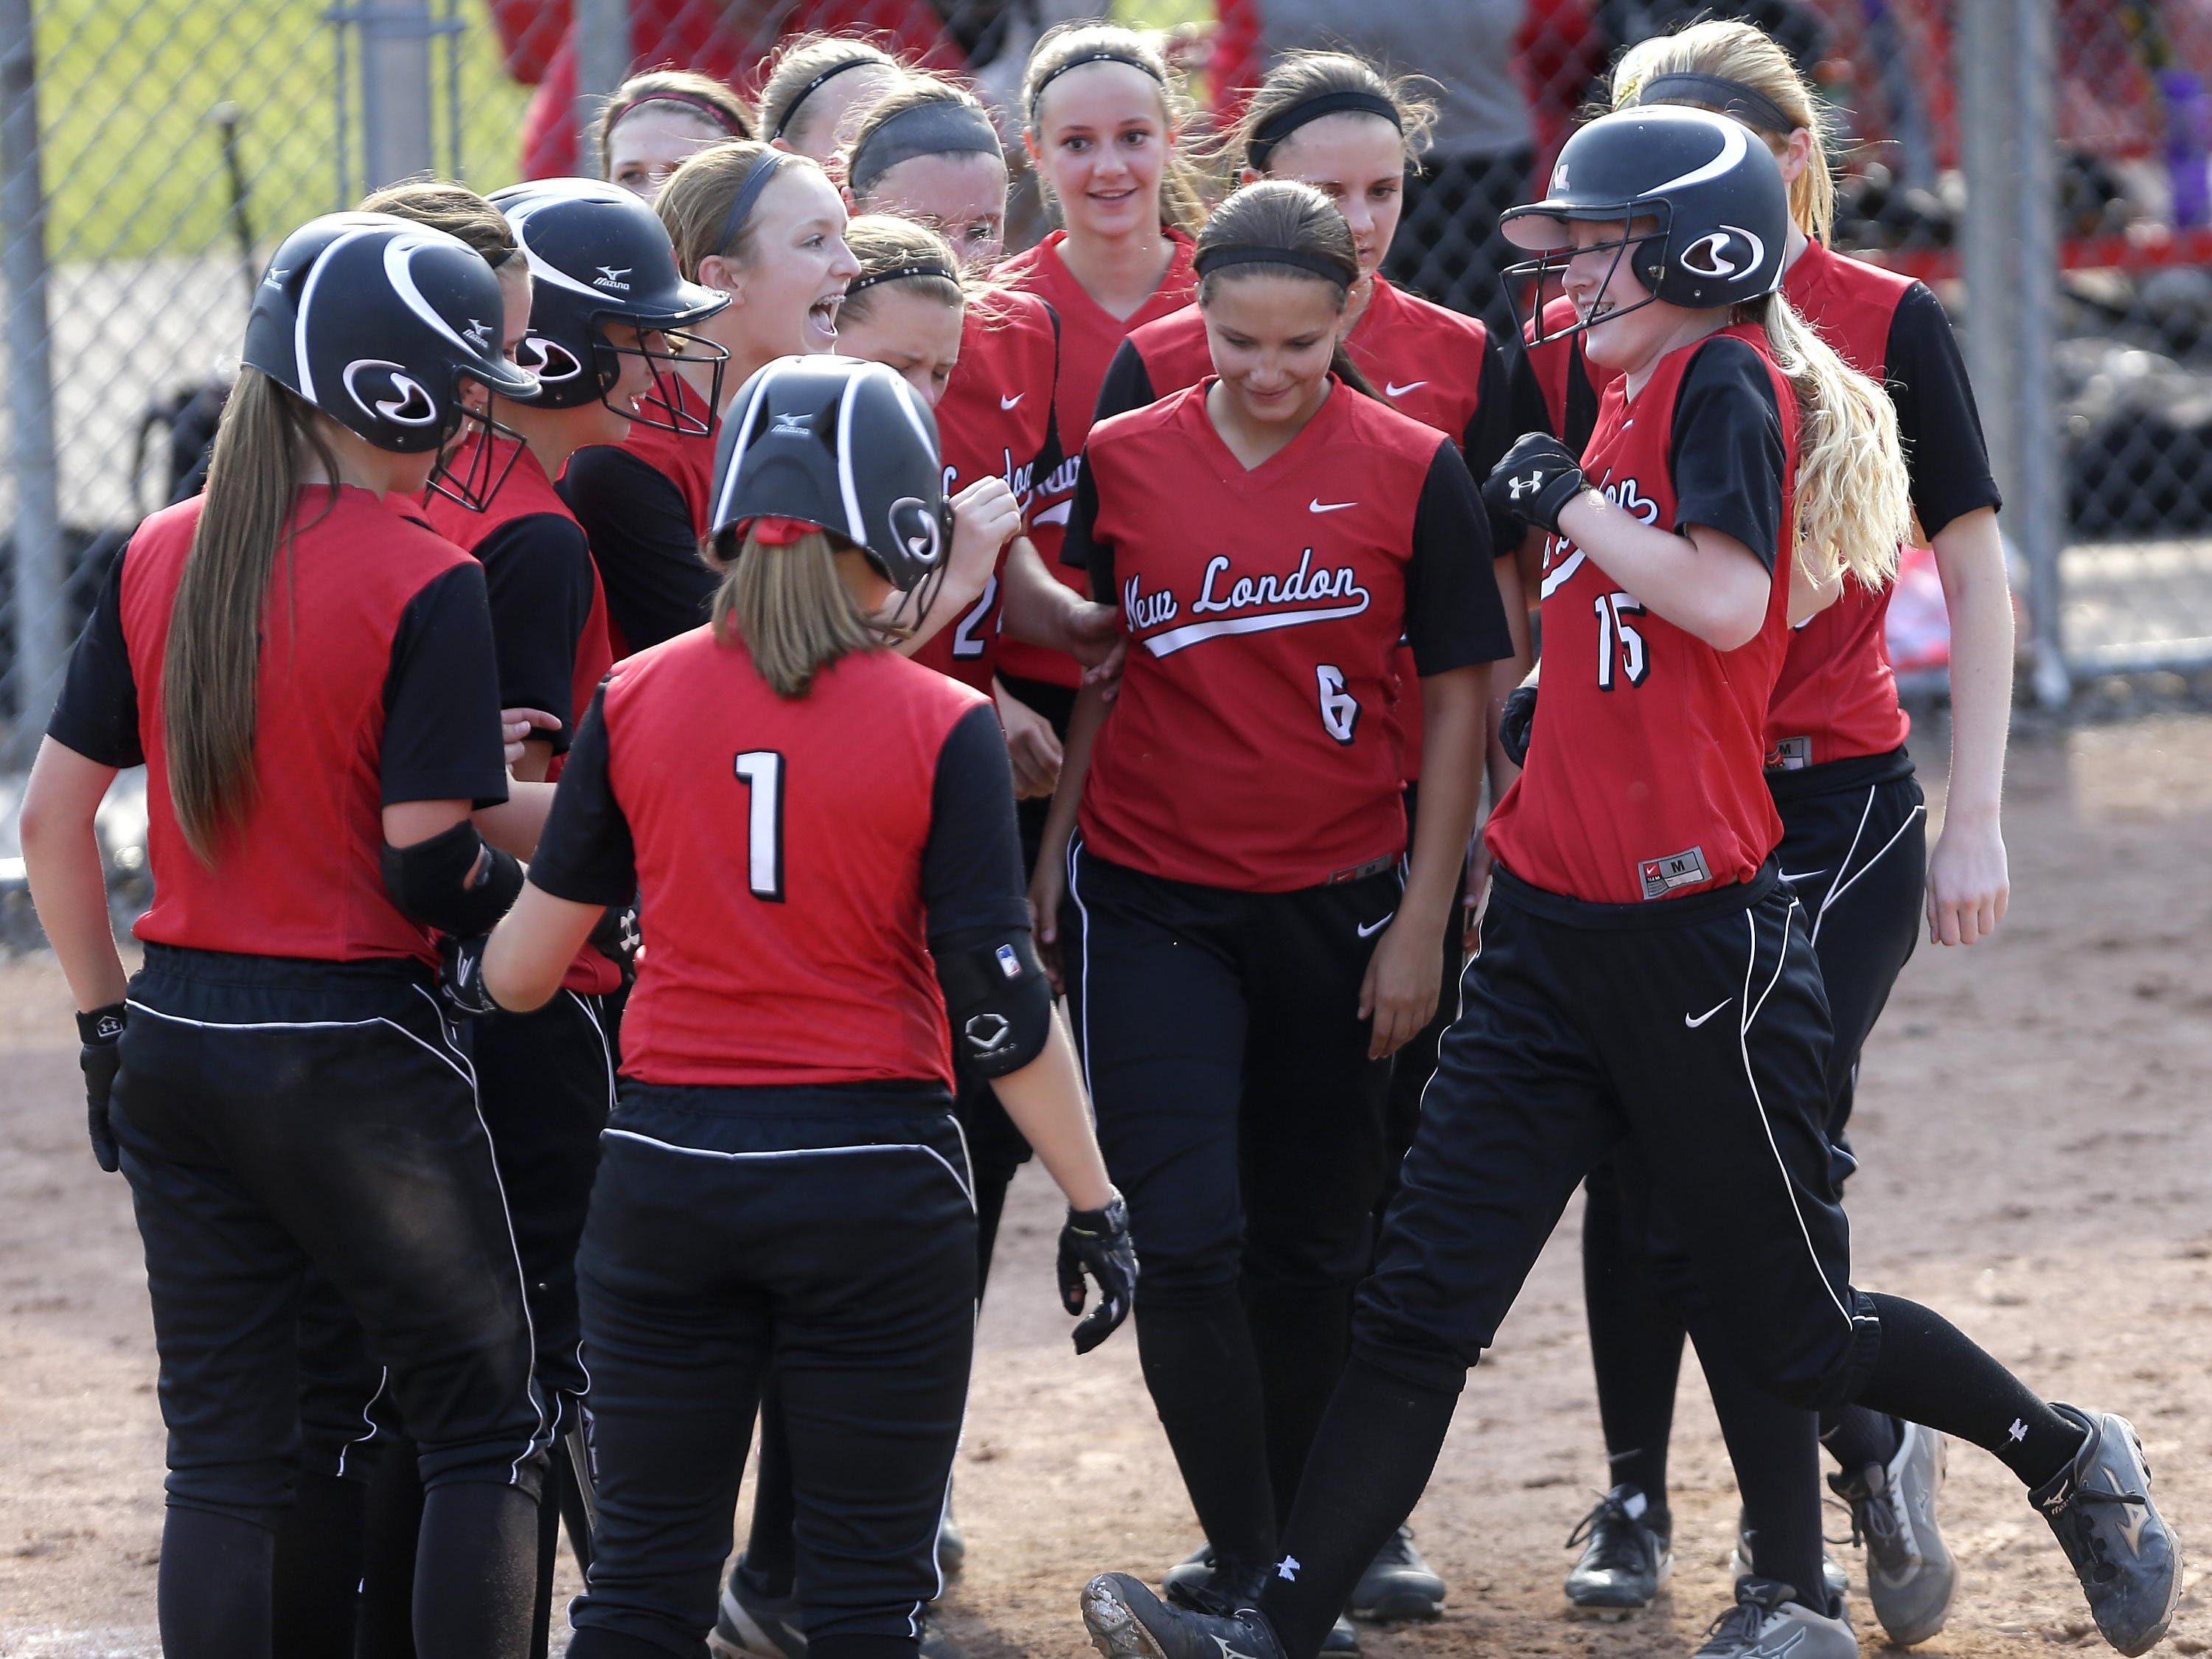 New London heads to state having won eight of its last nine games, including beating Division 1 power Stevens Point.